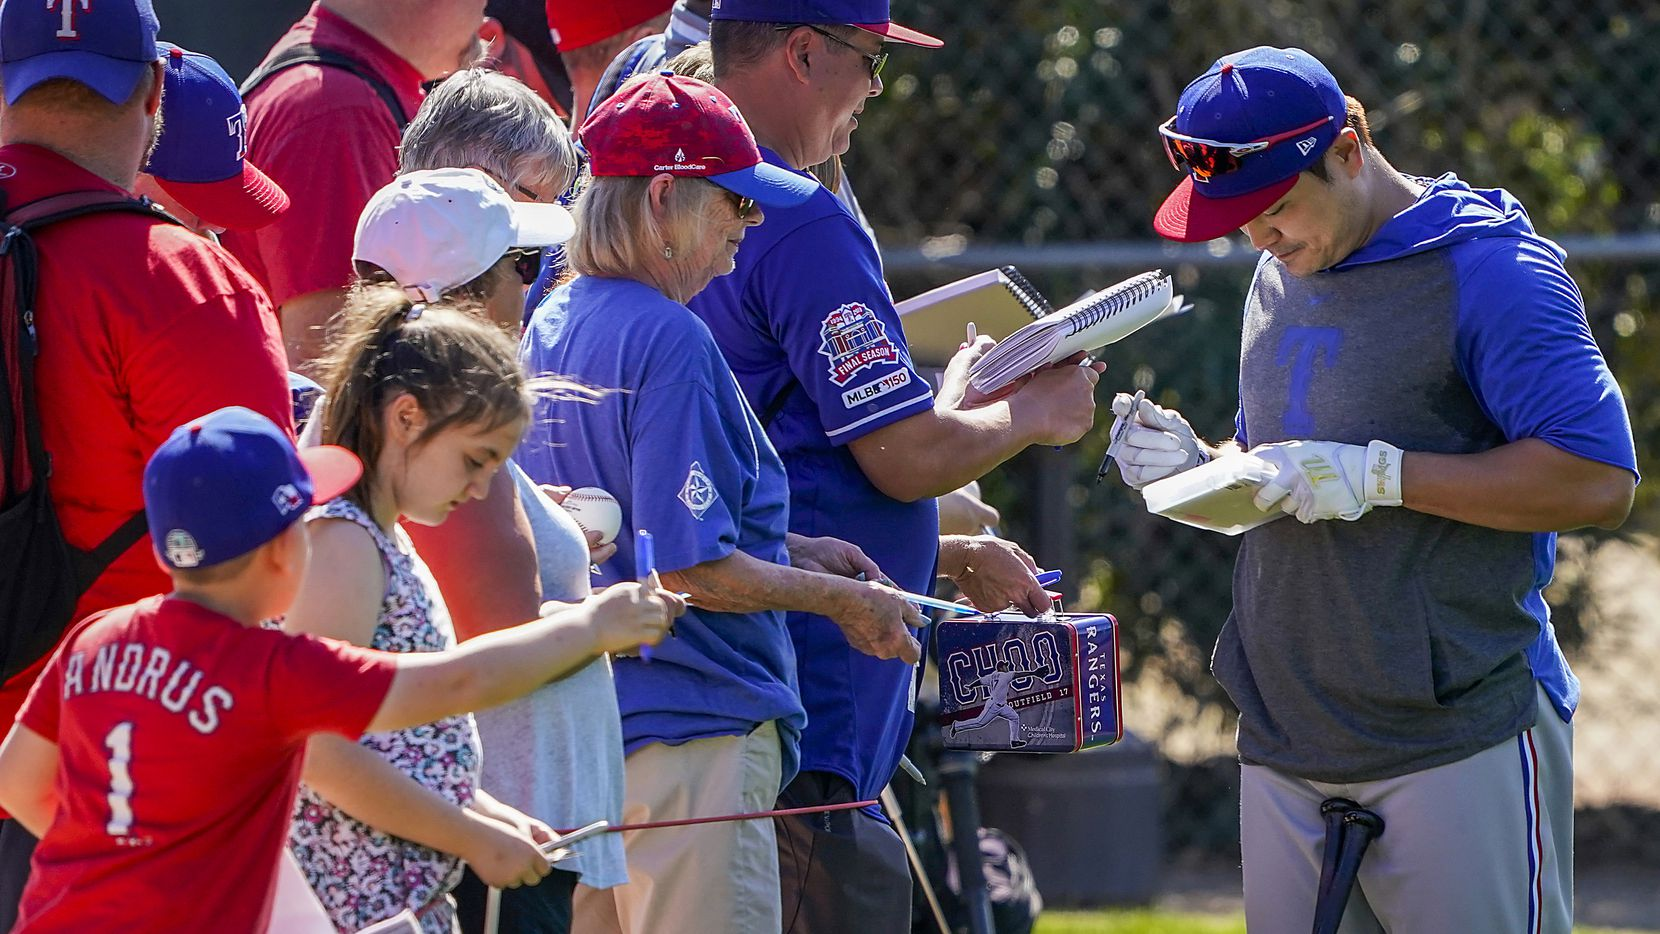 Texas Rangers outfielder Shin-Soo Choo signs autographs during a spring training workout at the team's training facility on Thursday, Feb. 20, 2020, in Surprise, Ariz.